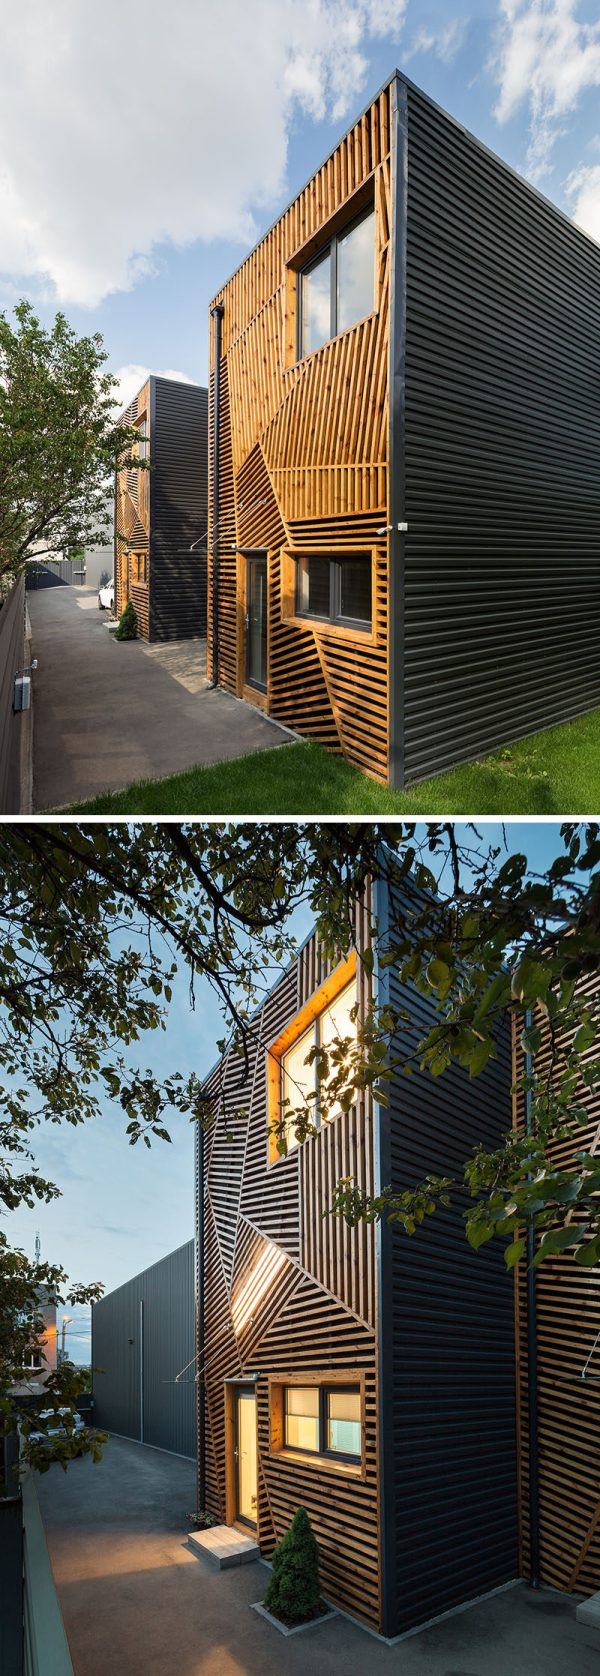 Townhouses Feature Creative And Artistic Wood